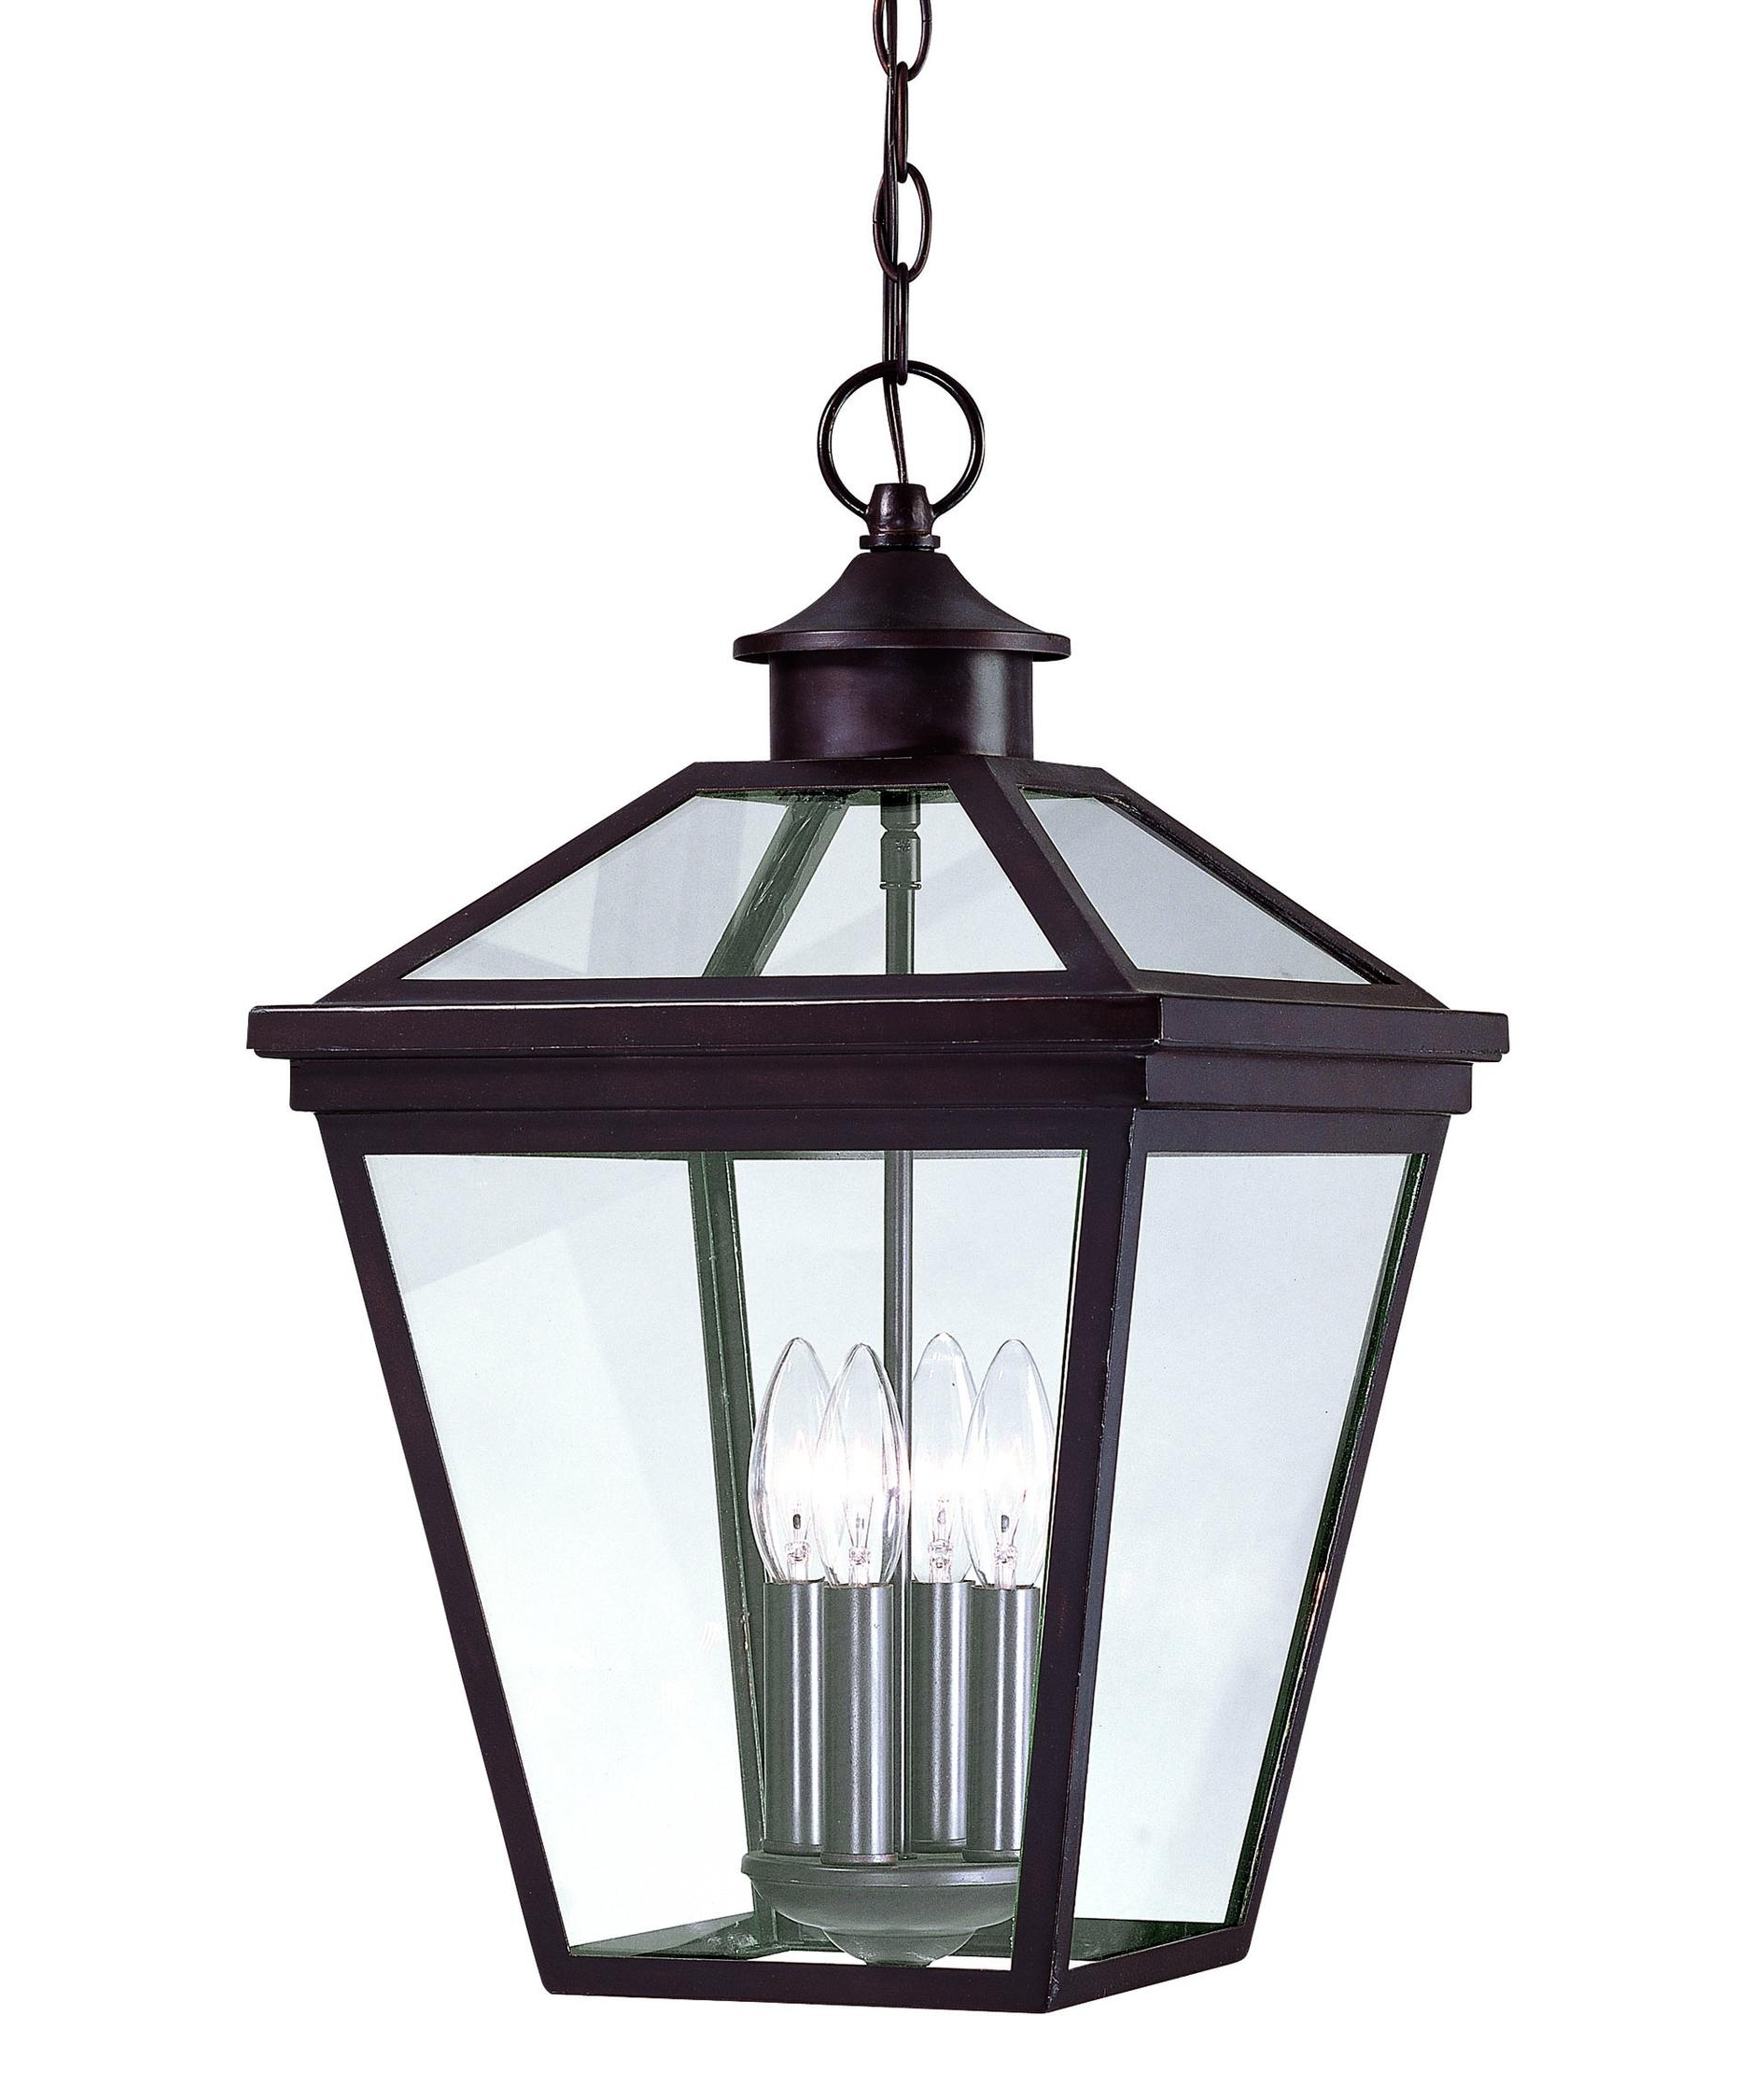 Most Recent Outdoor Hanging Lanterns – Nurani Pertaining To Outdoor Hanging Lamps At Amazon (View 11 of 20)